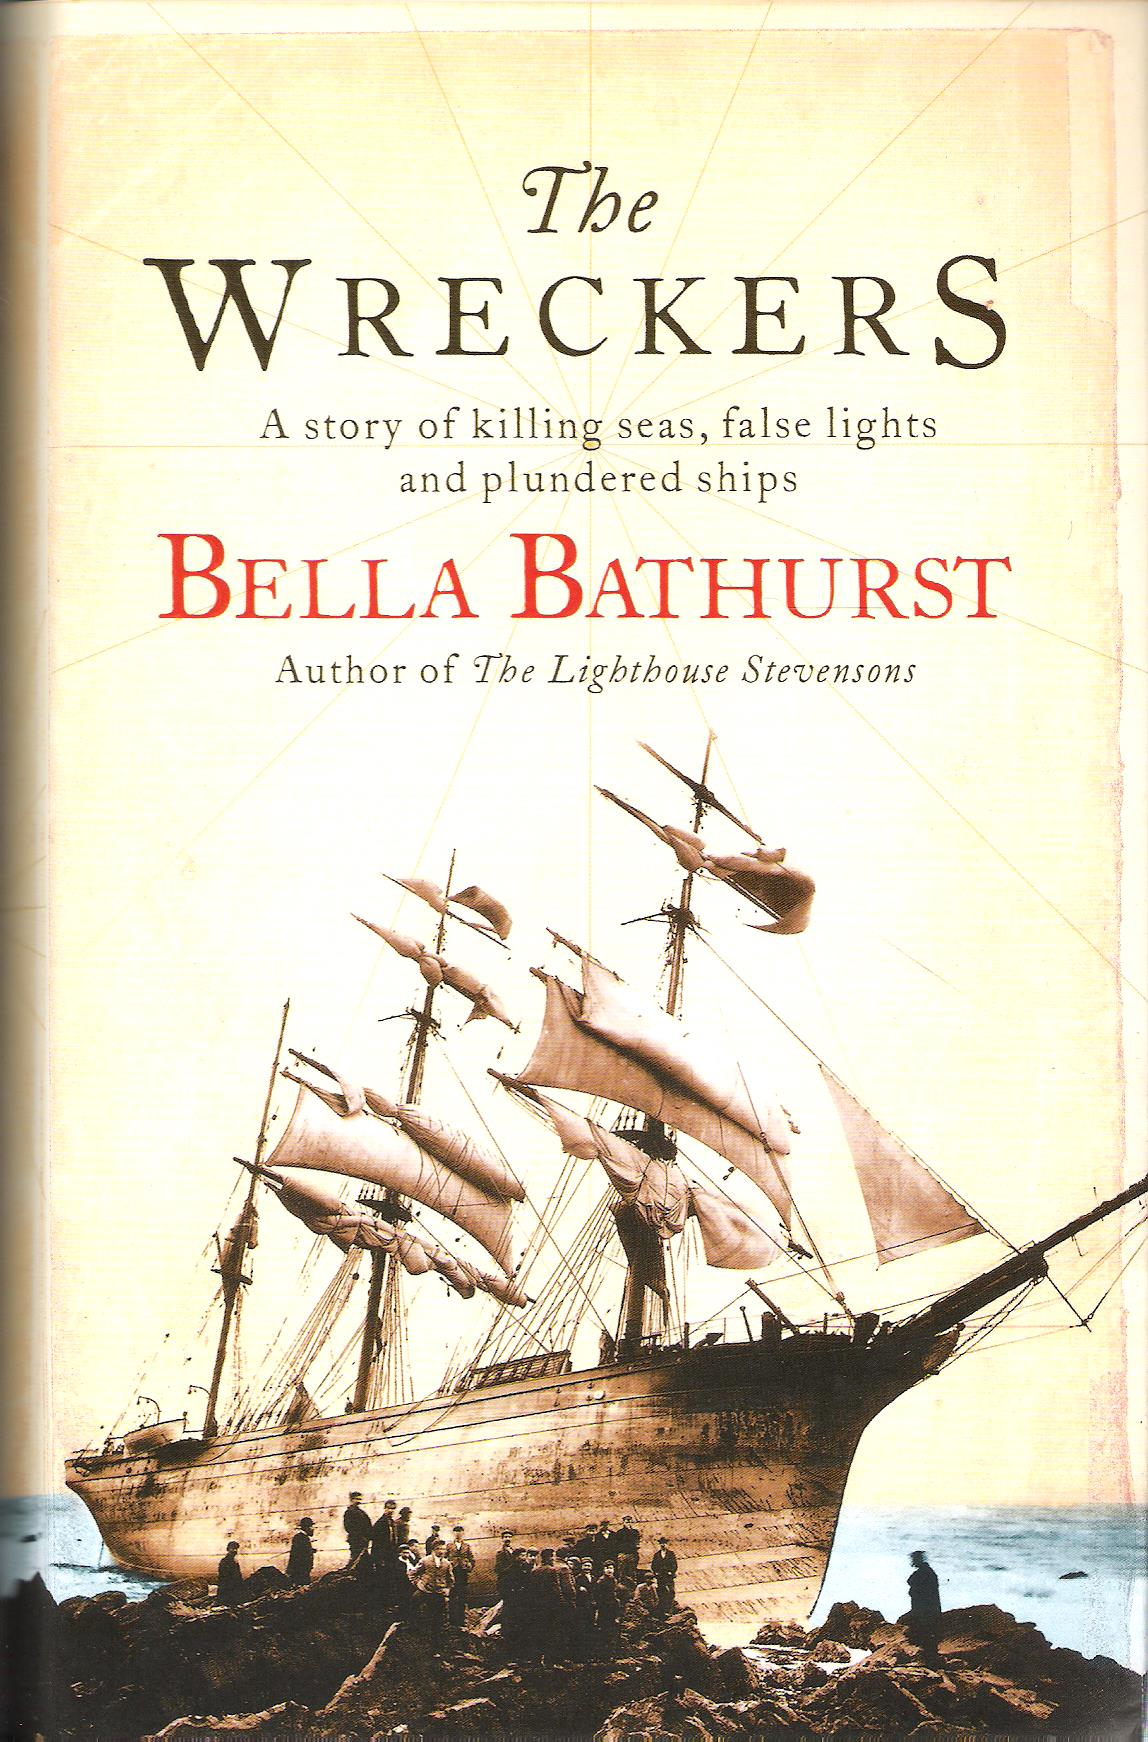 Image for The Wreckers: A Story of Killing Seas, False Lights and Plundered Ships.